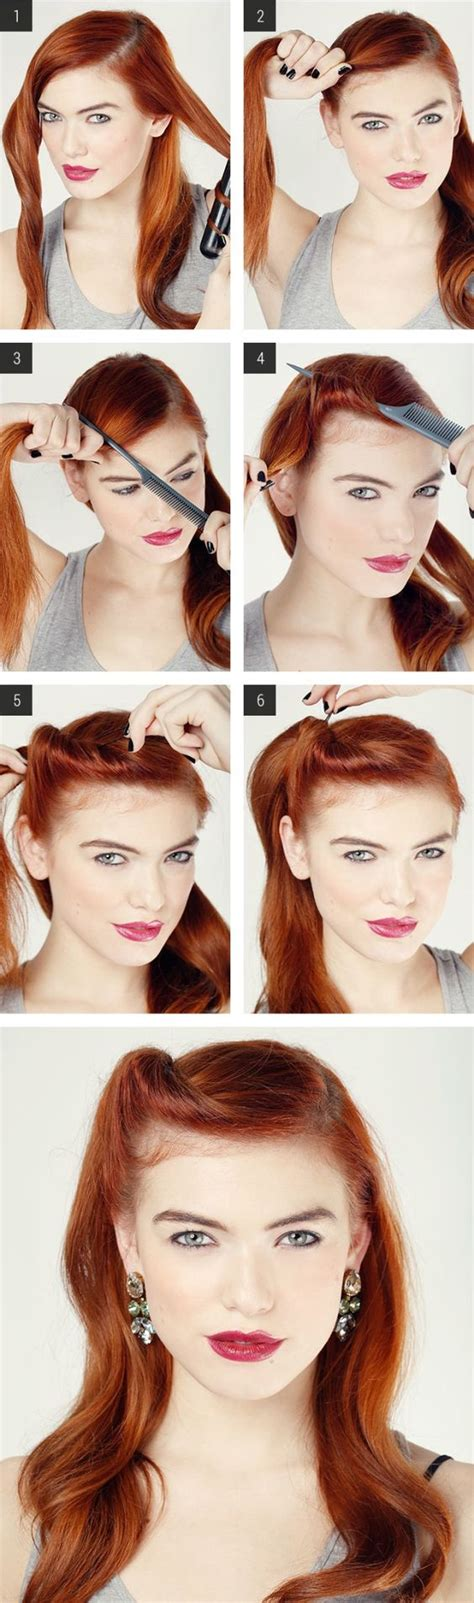 1950s step by step hairstyle 20 elegant retro hairstyles 2018 vintage hairstyles for